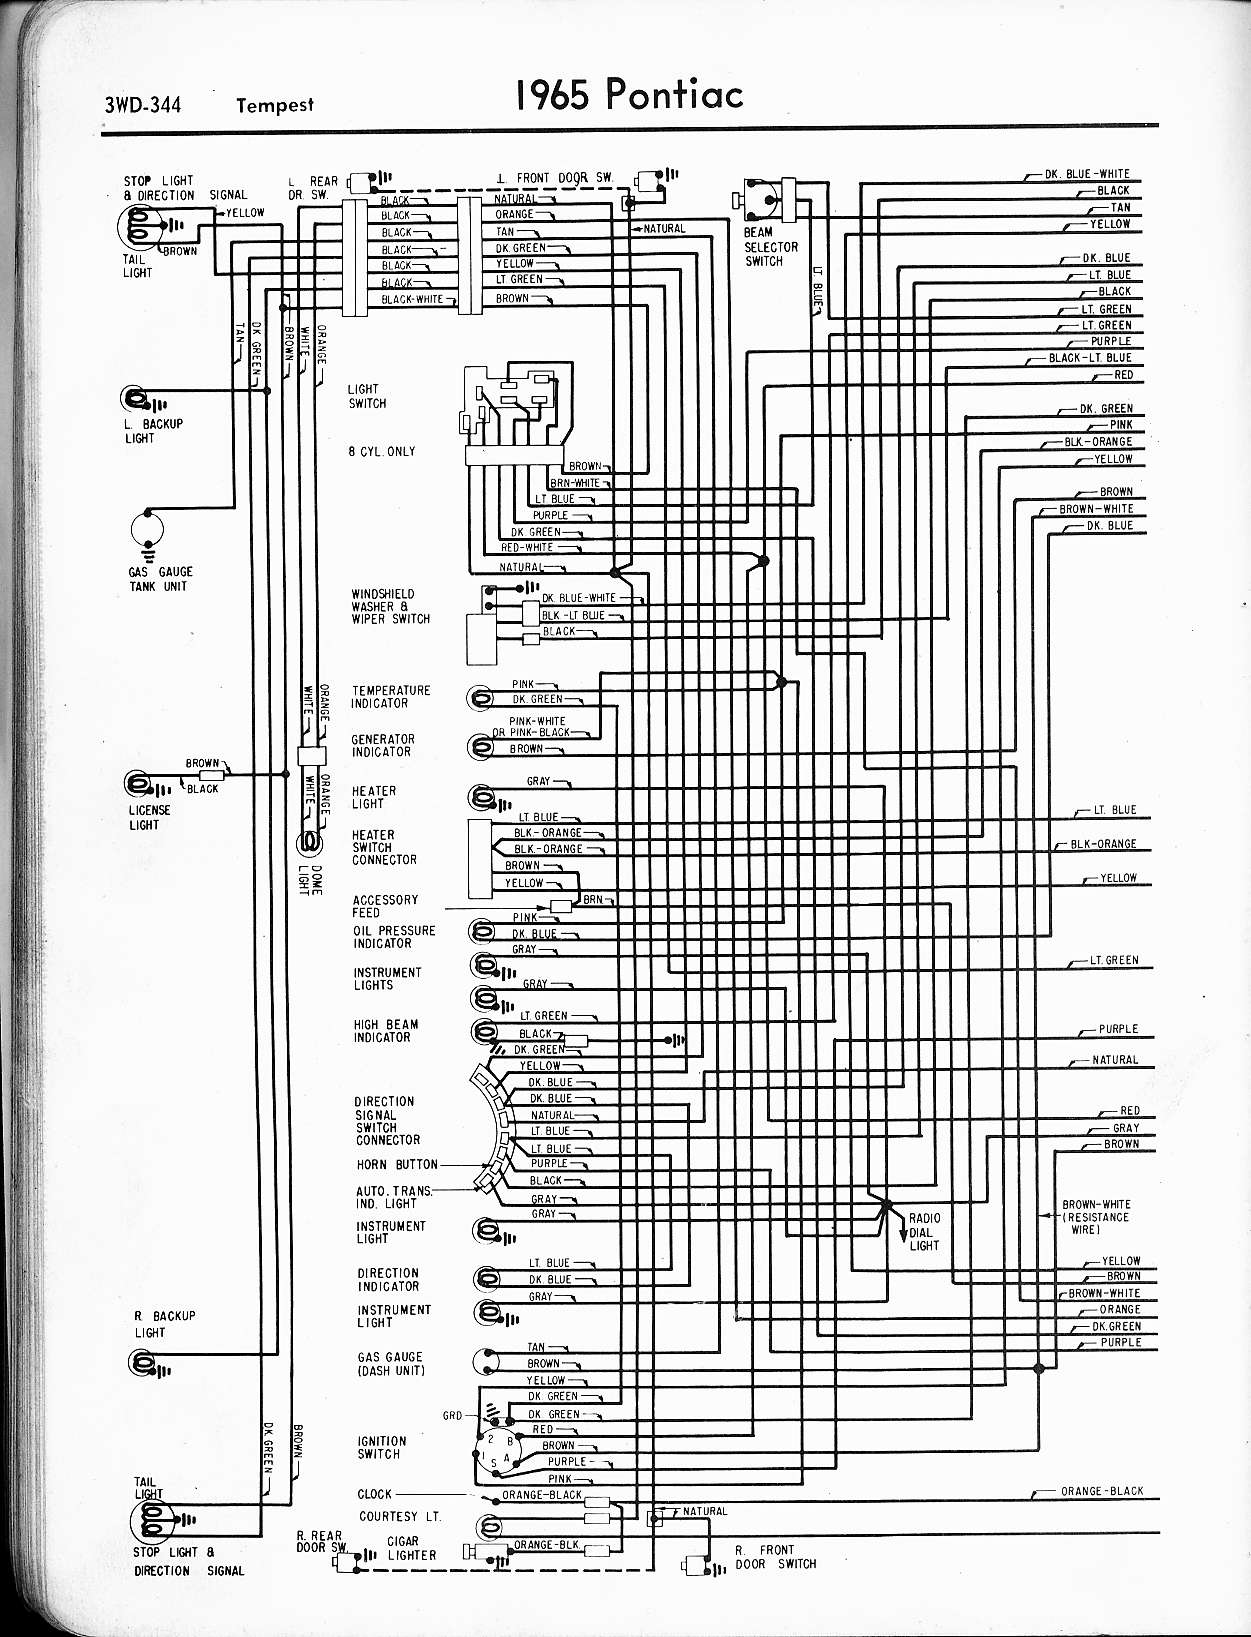 1991 3000gt Tachometer Wiring Diagram - Wiring Diagram H8 on auto meter boost gauge wiring diagram, voltmeter circuit diagram, auto meter volt gauge wiring diagram, oil pressure gauge wiring diagram, auto meter electric speedometer wiring diagram, nissan sentra wiring diagram, water temperature gauge auto meter wiring diagram, tach wiring diagram, cat marine alternator wiring diagram, electronic digital auto tachometer diagram, water meter installation diagram,